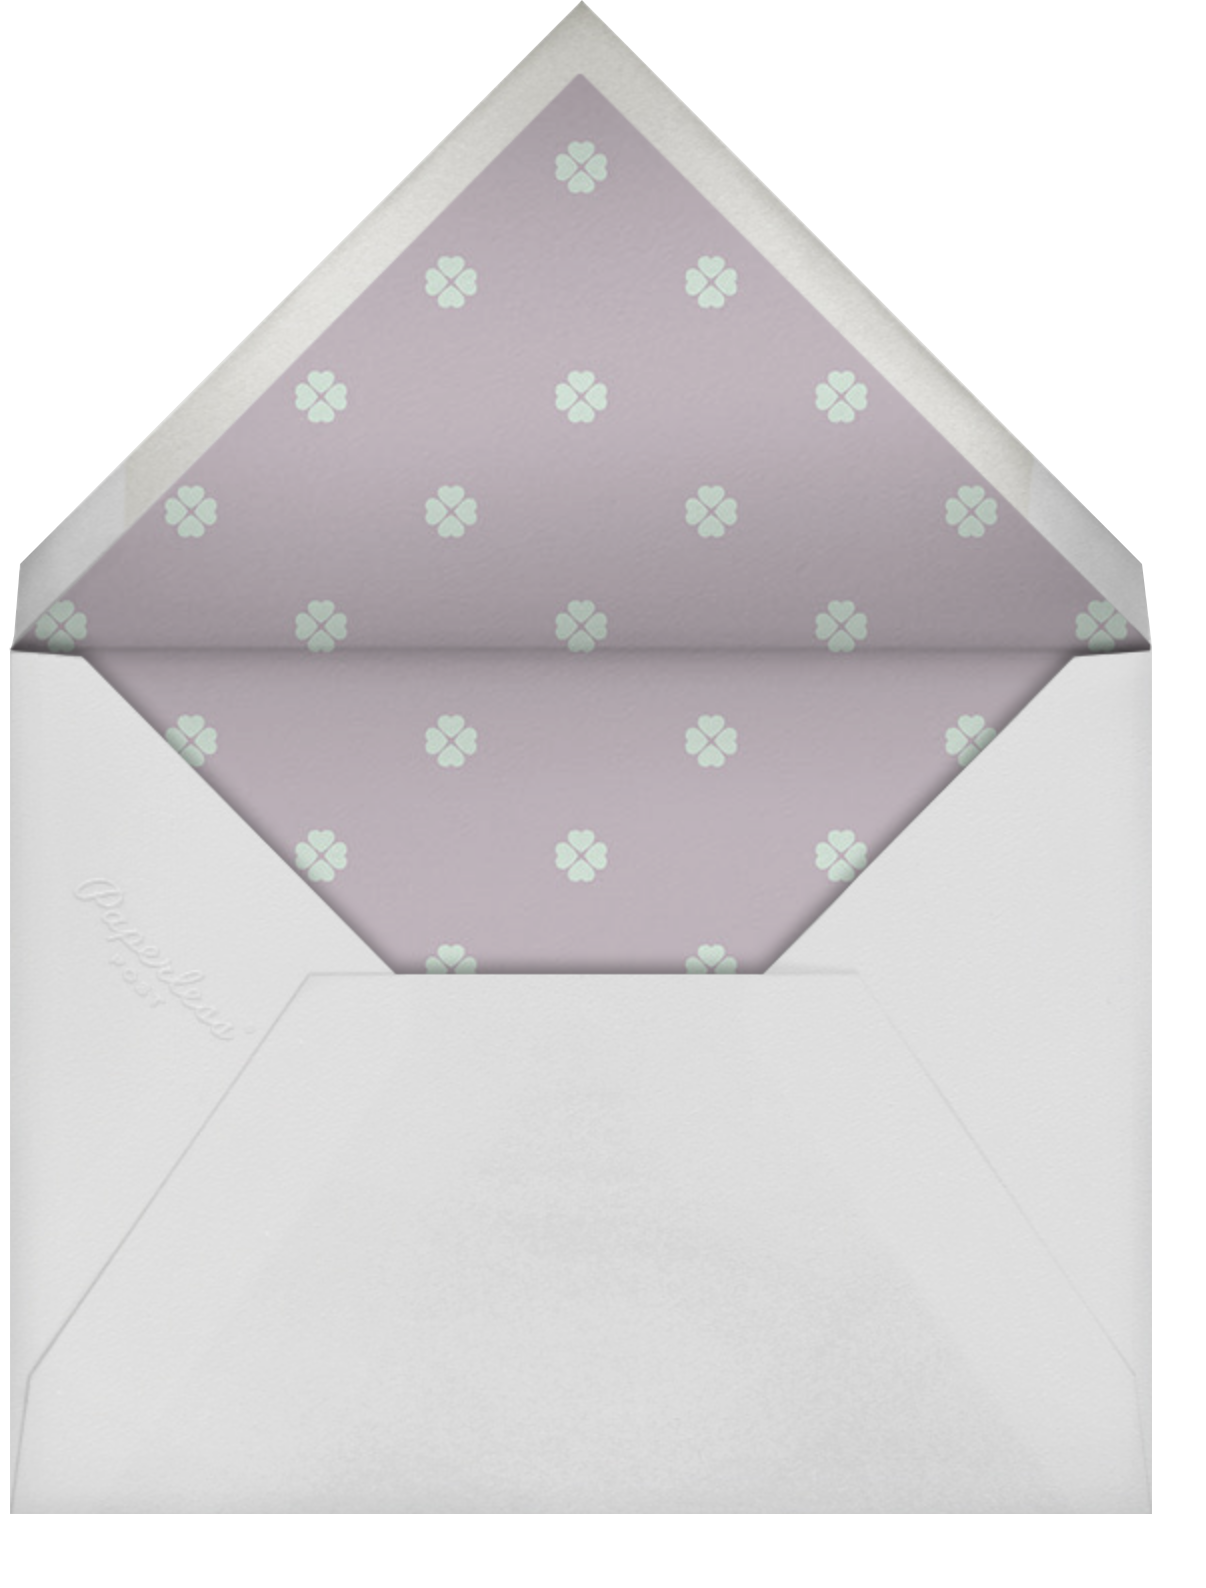 Rosy Dreams - Pistachio - kate spade new york - Bridal shower - envelope back